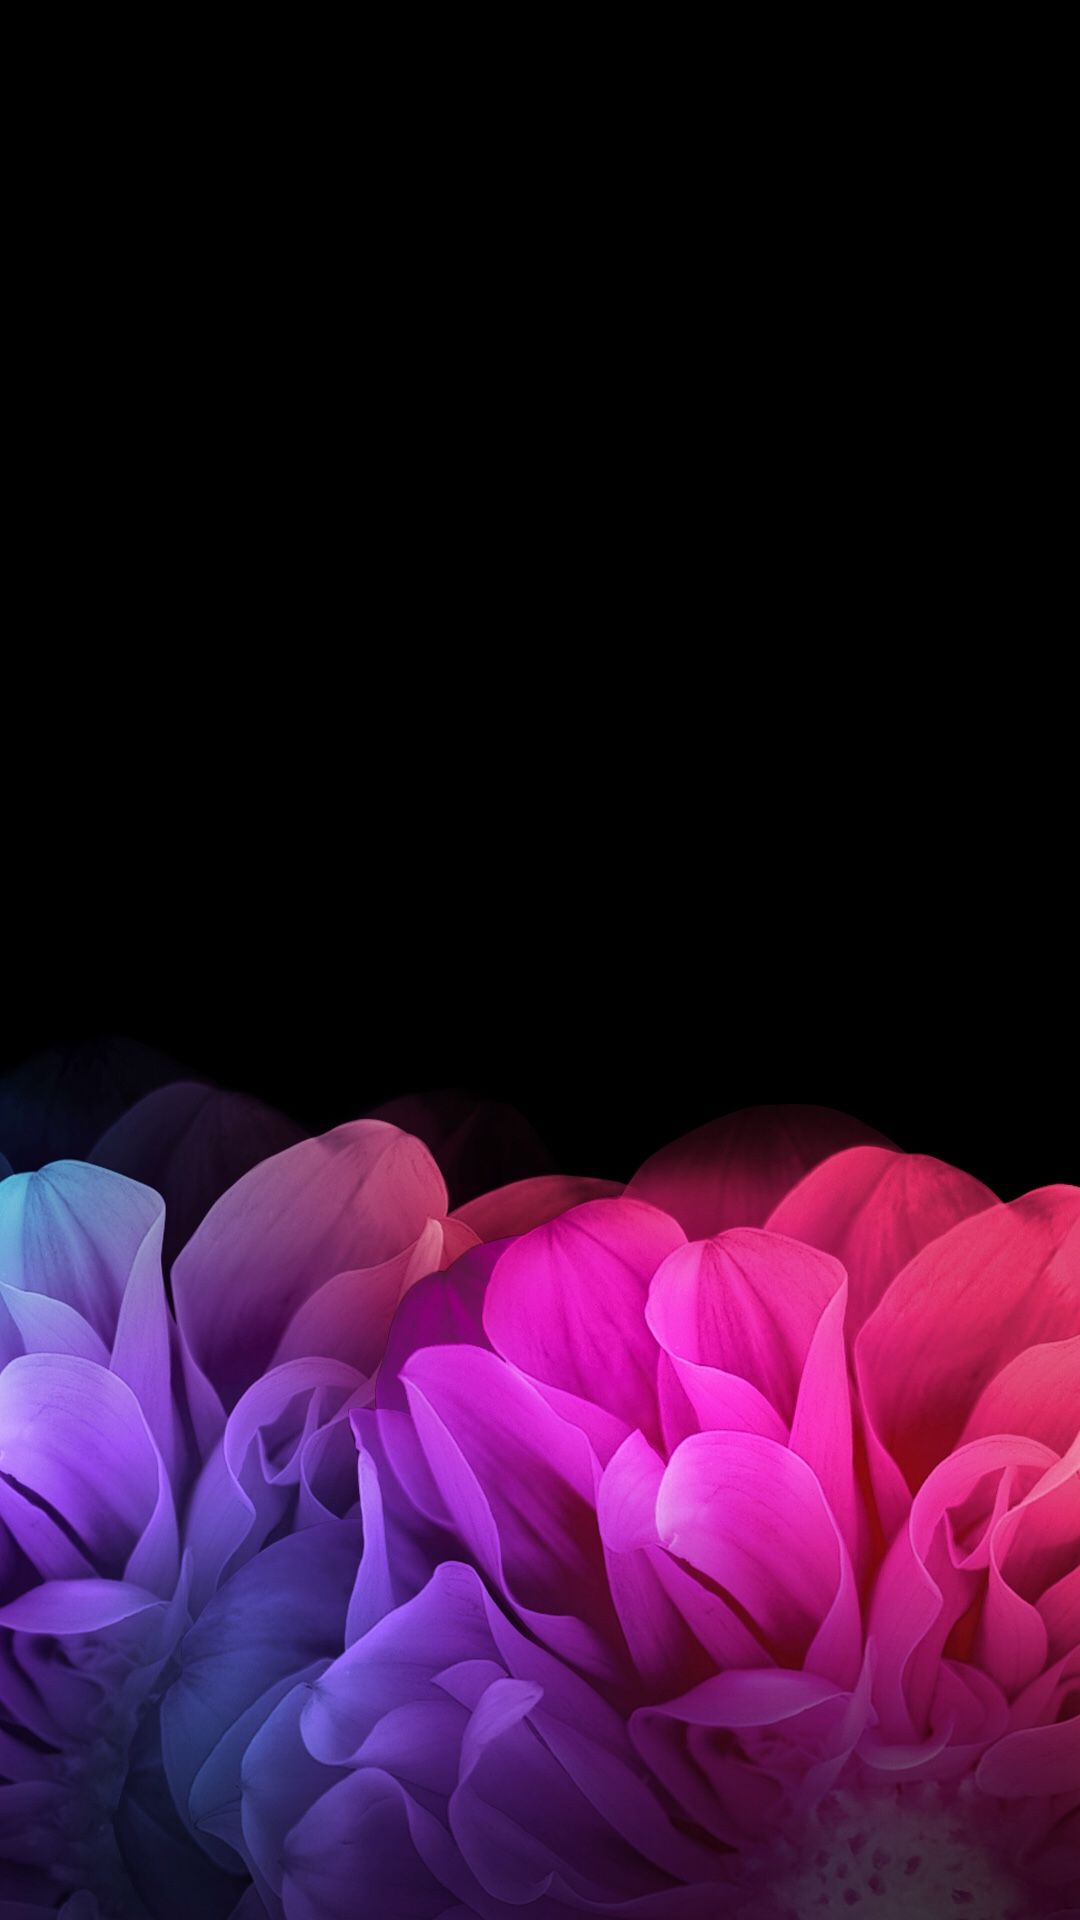 Black Floral Iphone Wallpaper Phone Backgrounds Floral Wallpaper